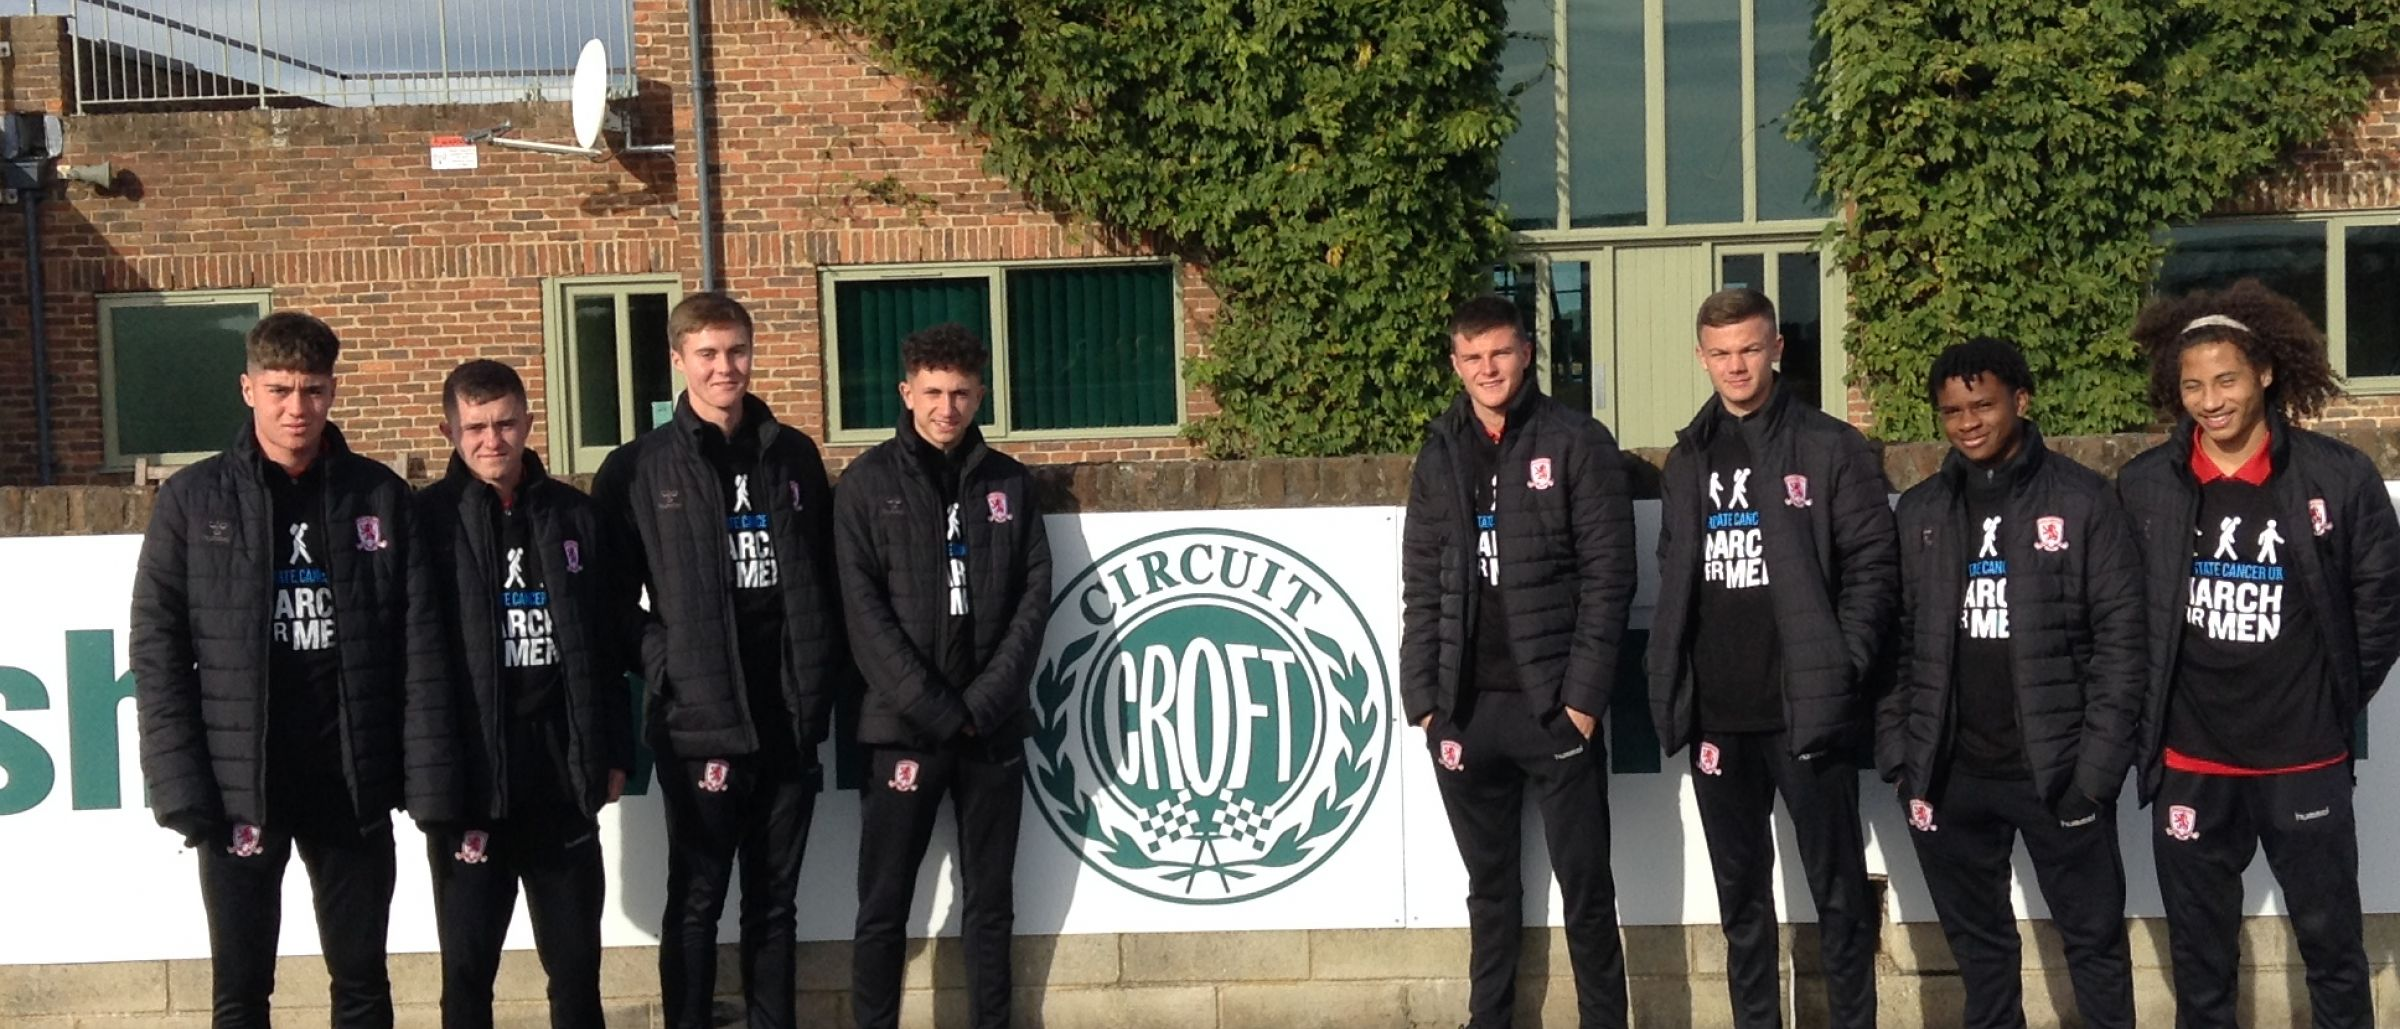 Under-18s March for Men